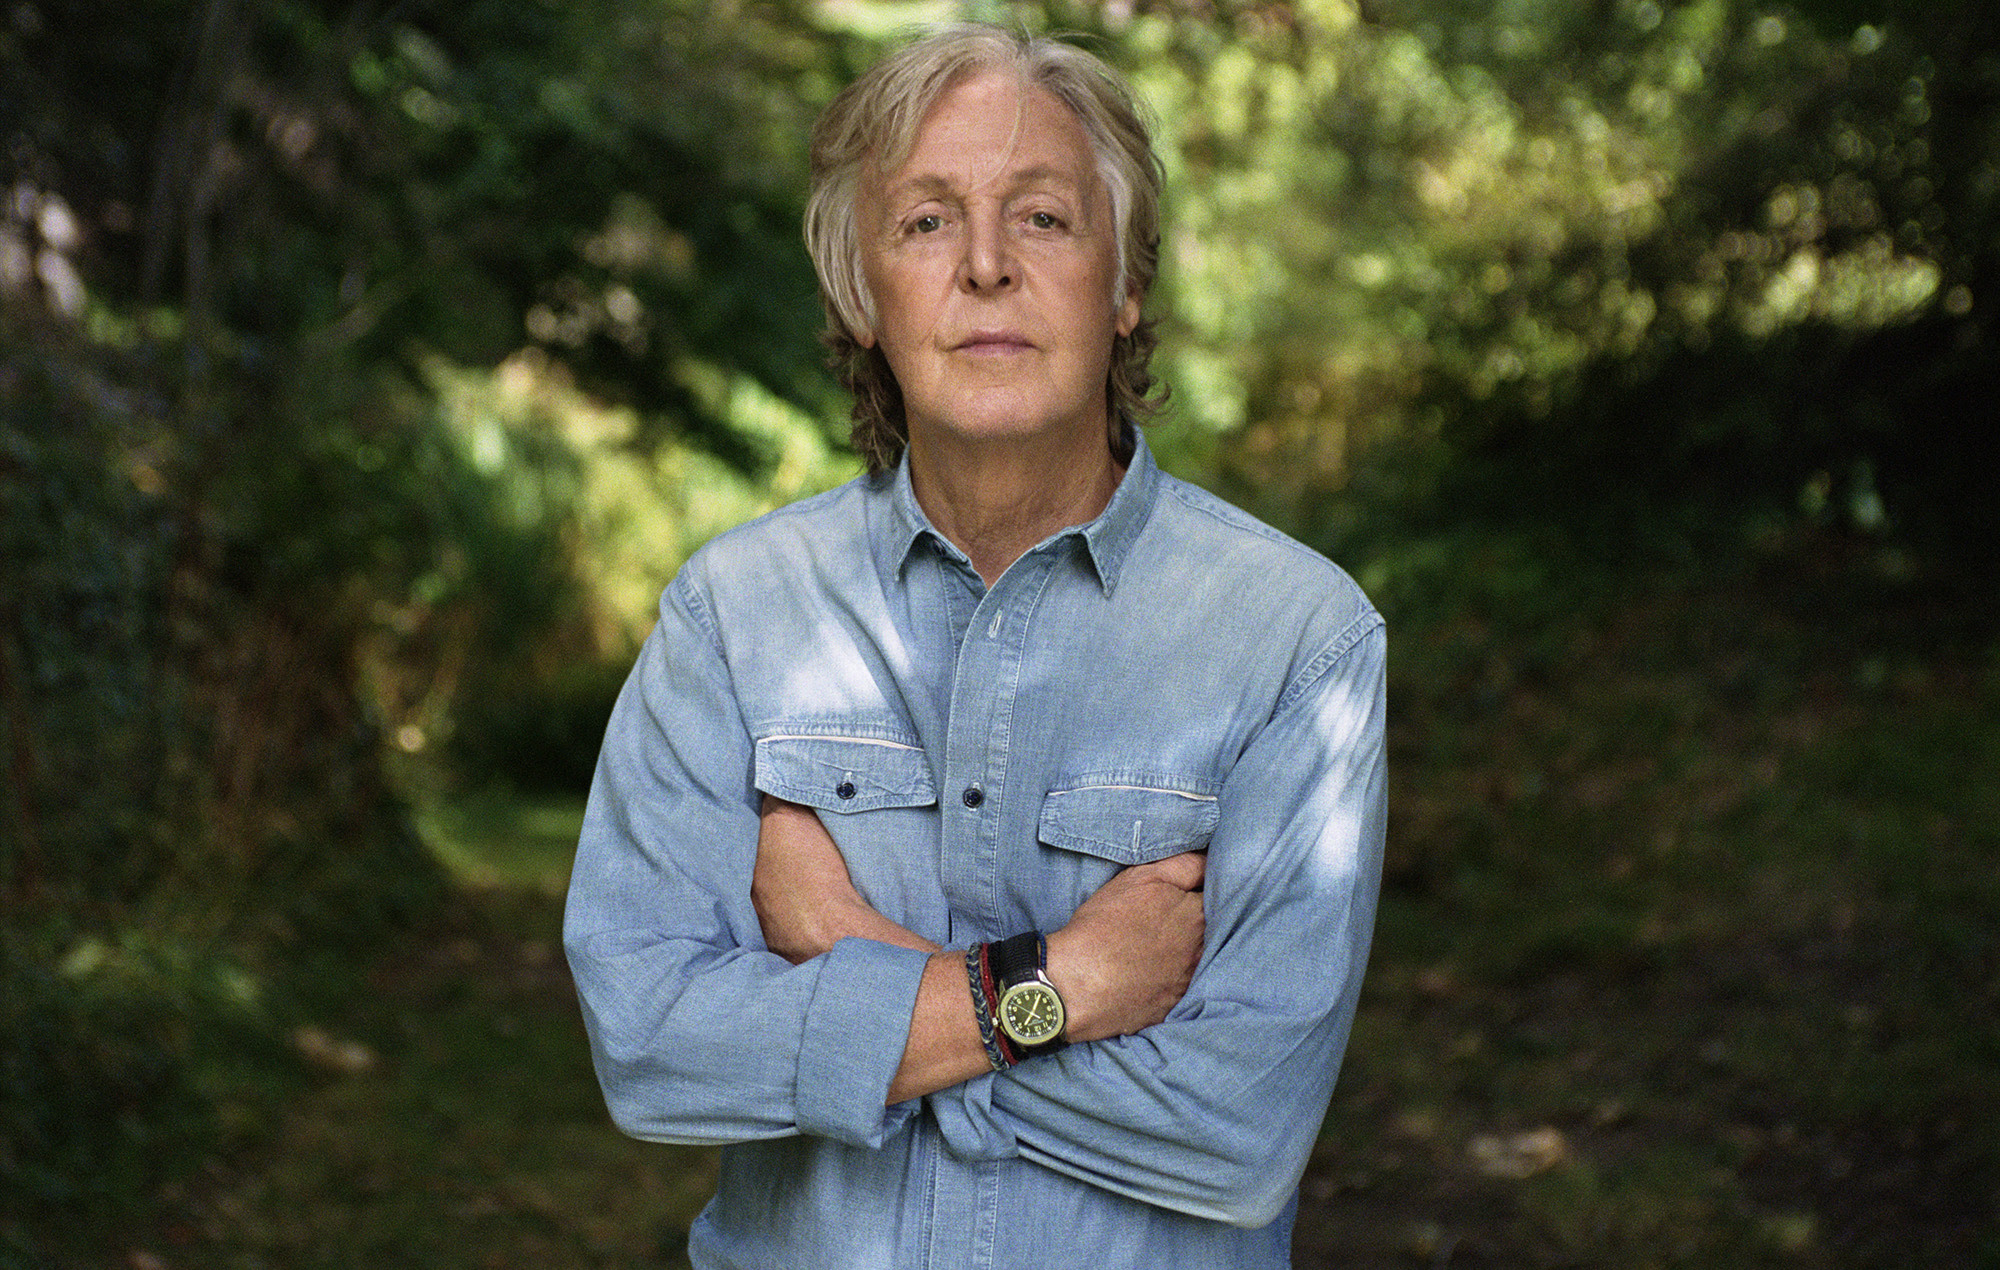 Paul McCartney to discuss new book at London's Southbank Centre